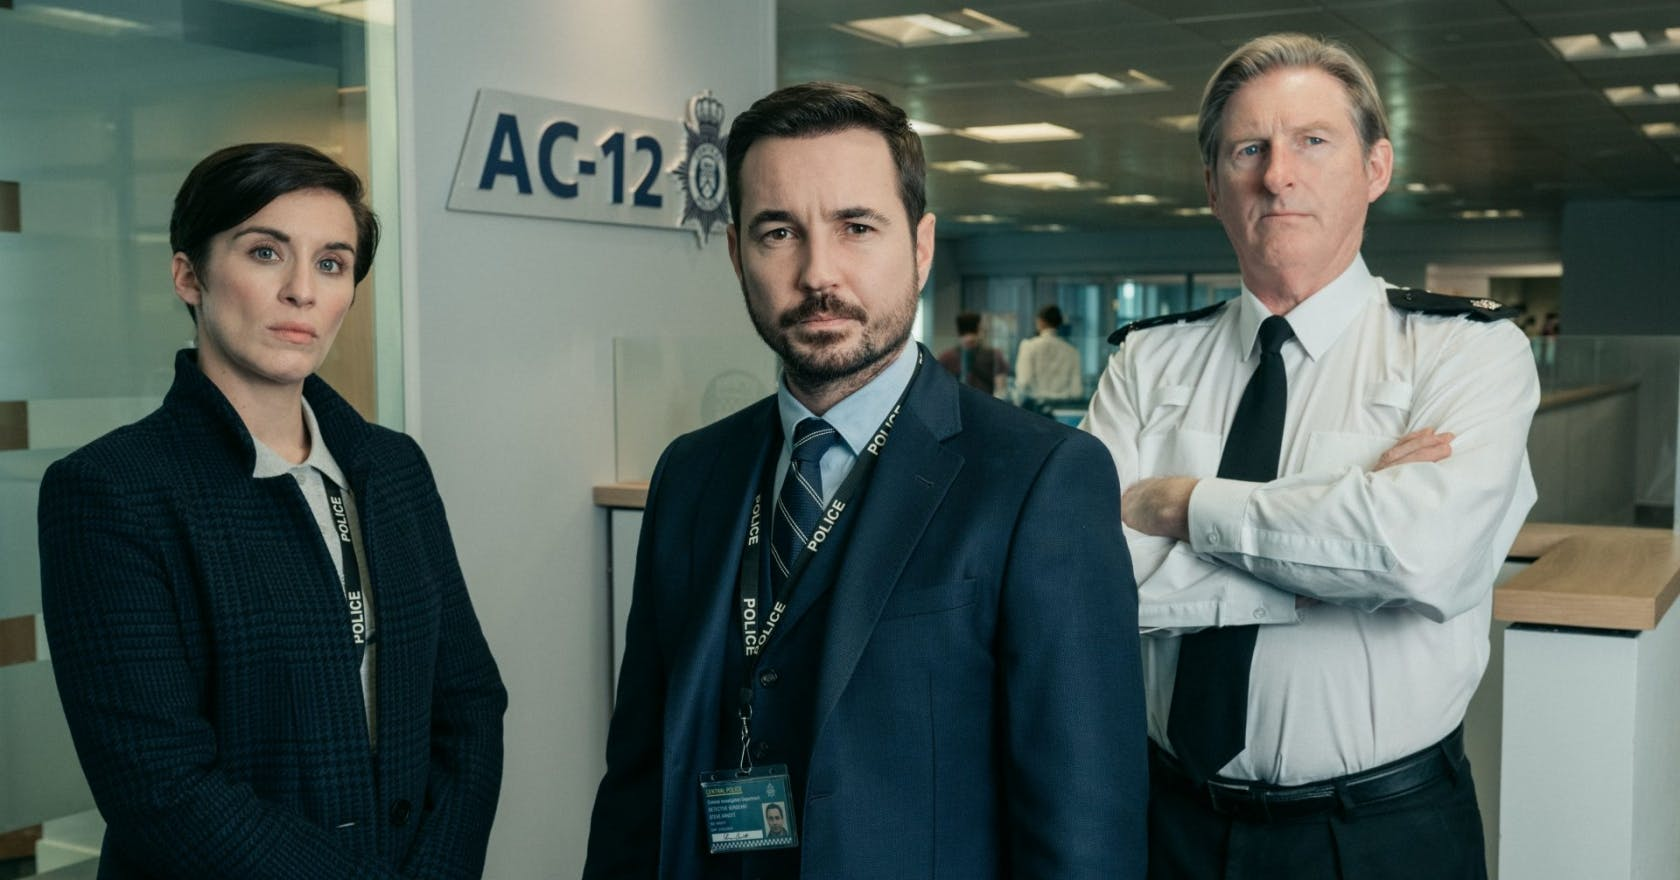 Obsessed with Line Of Duty? The official podcast is for you